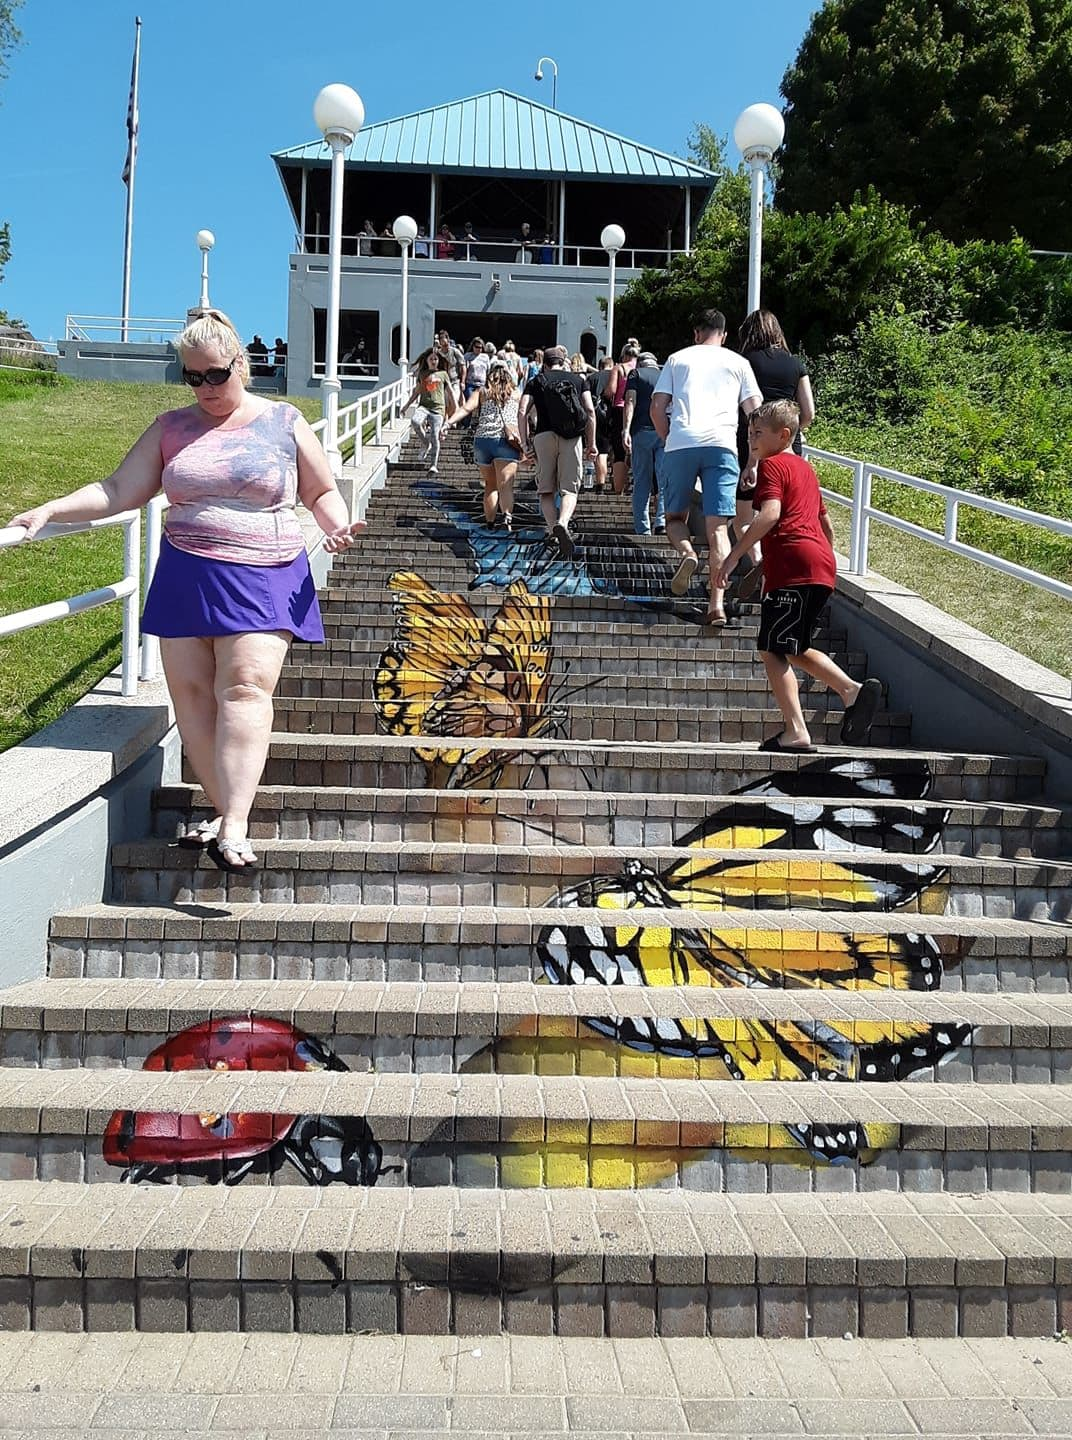 Public Art by Anat Ronen seen at St. Joseph, St. Joseph - Butterfly stairs